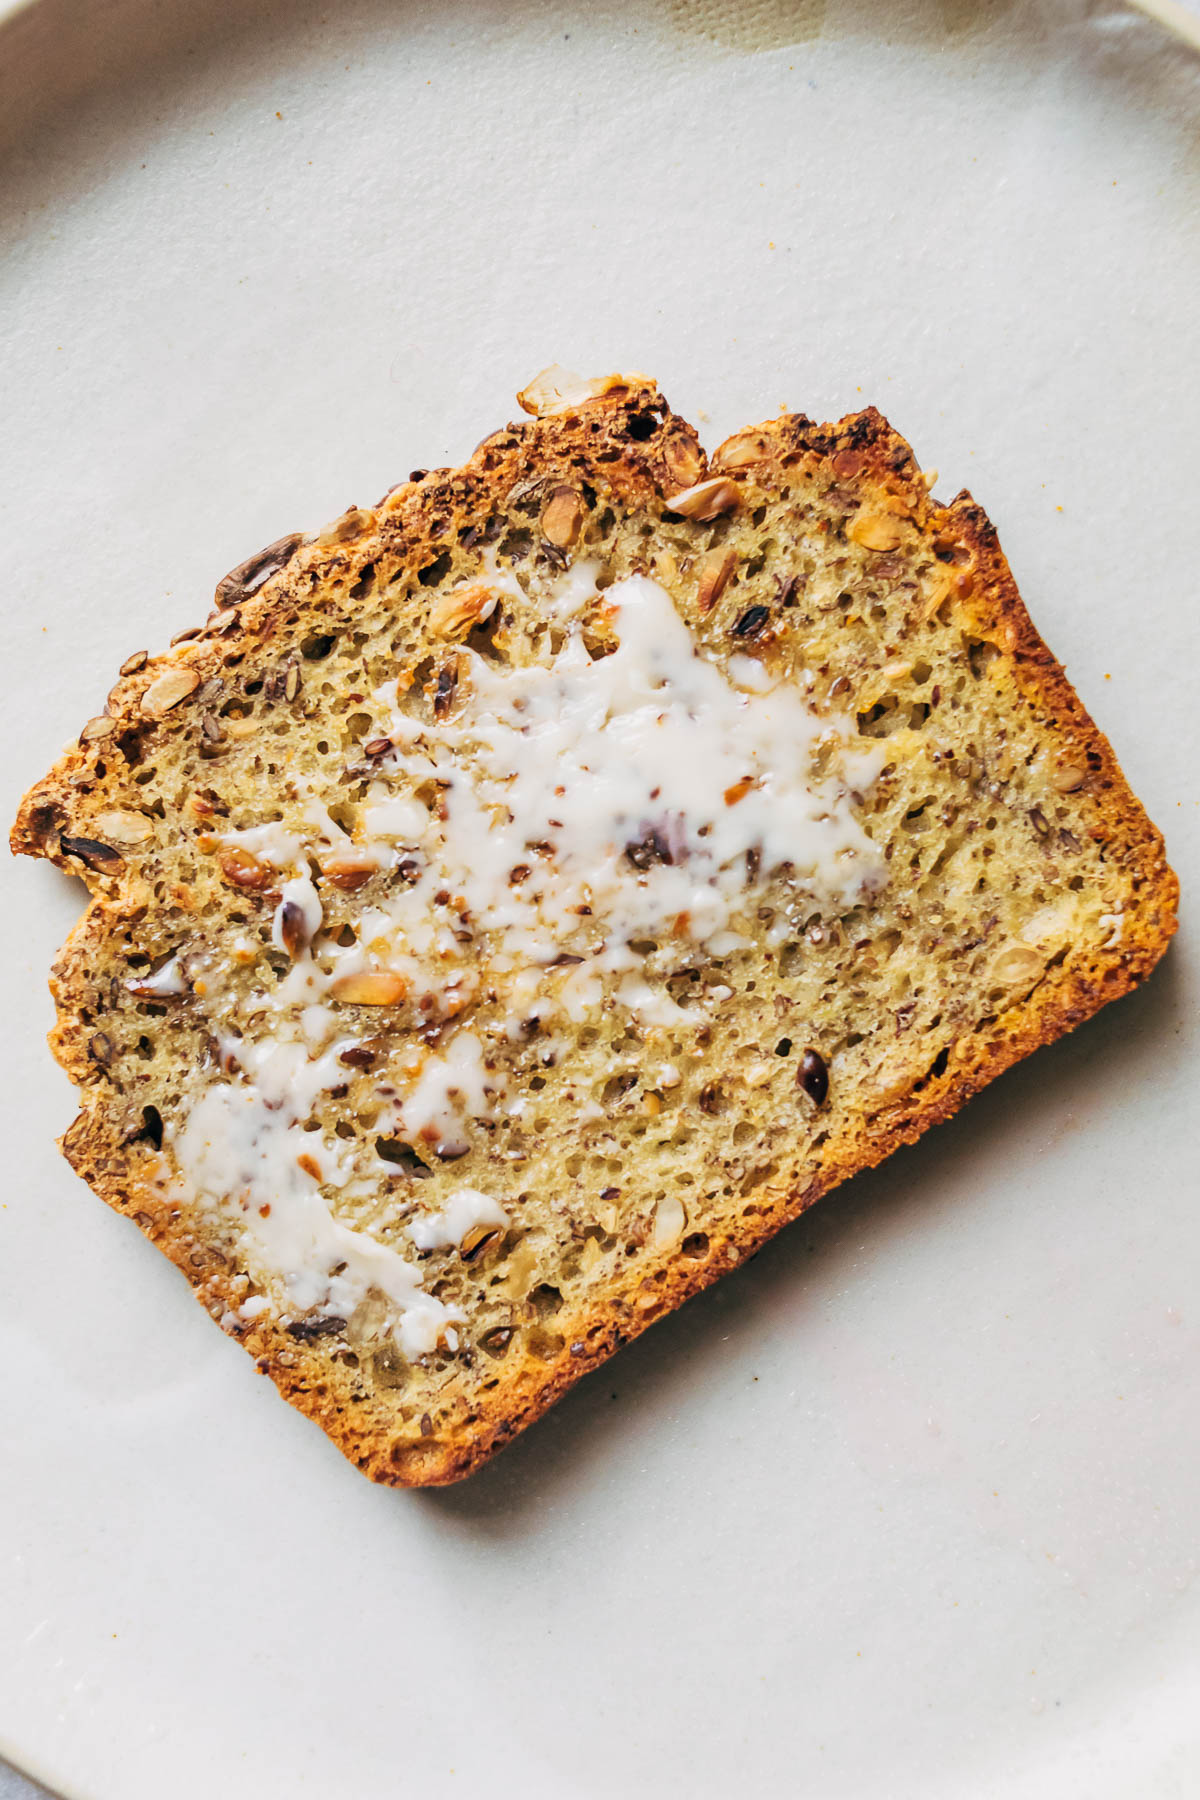 A buttered piece of gluten free toast.